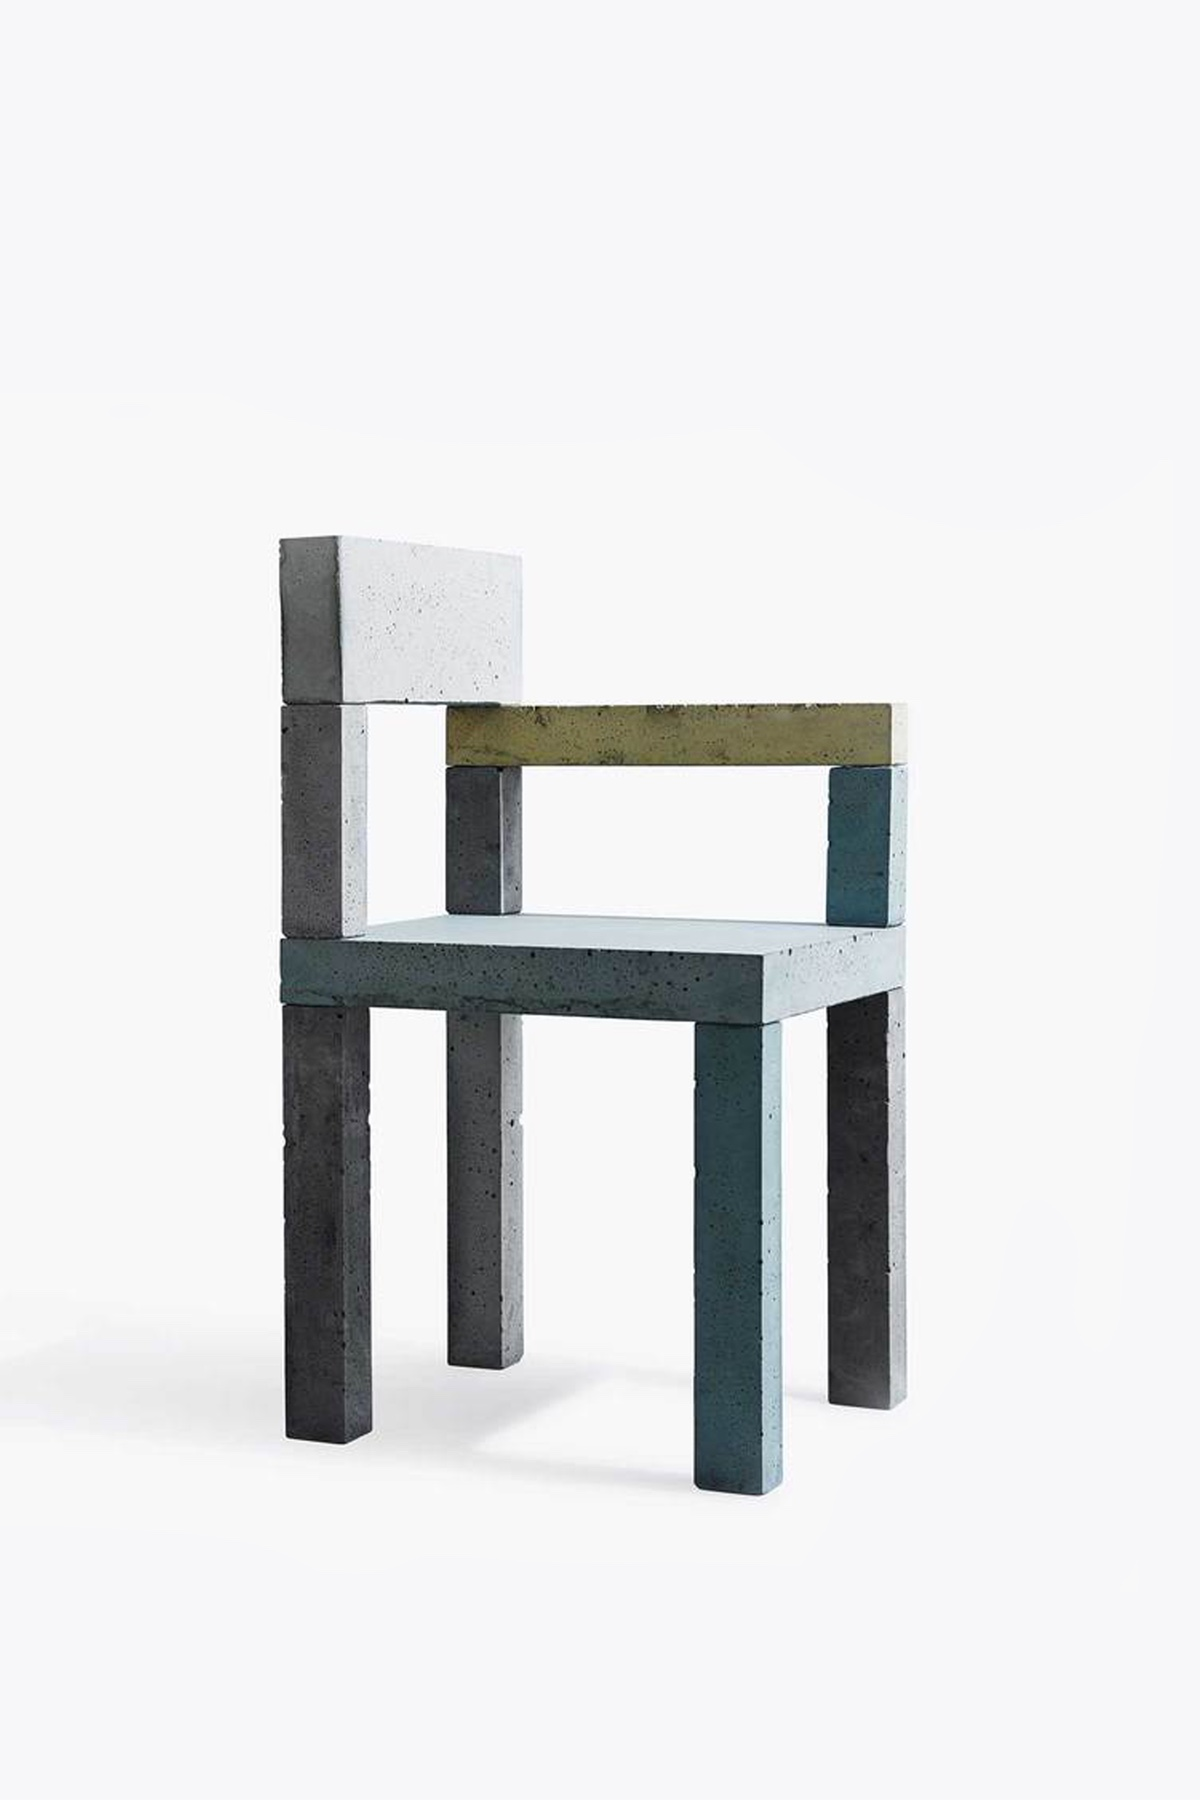 Untitled (Concrete Chair) designed by artist Magnus Pettersen. Meshing art with design, this chair's concrete utilitarian aspect is cleverly expressed.